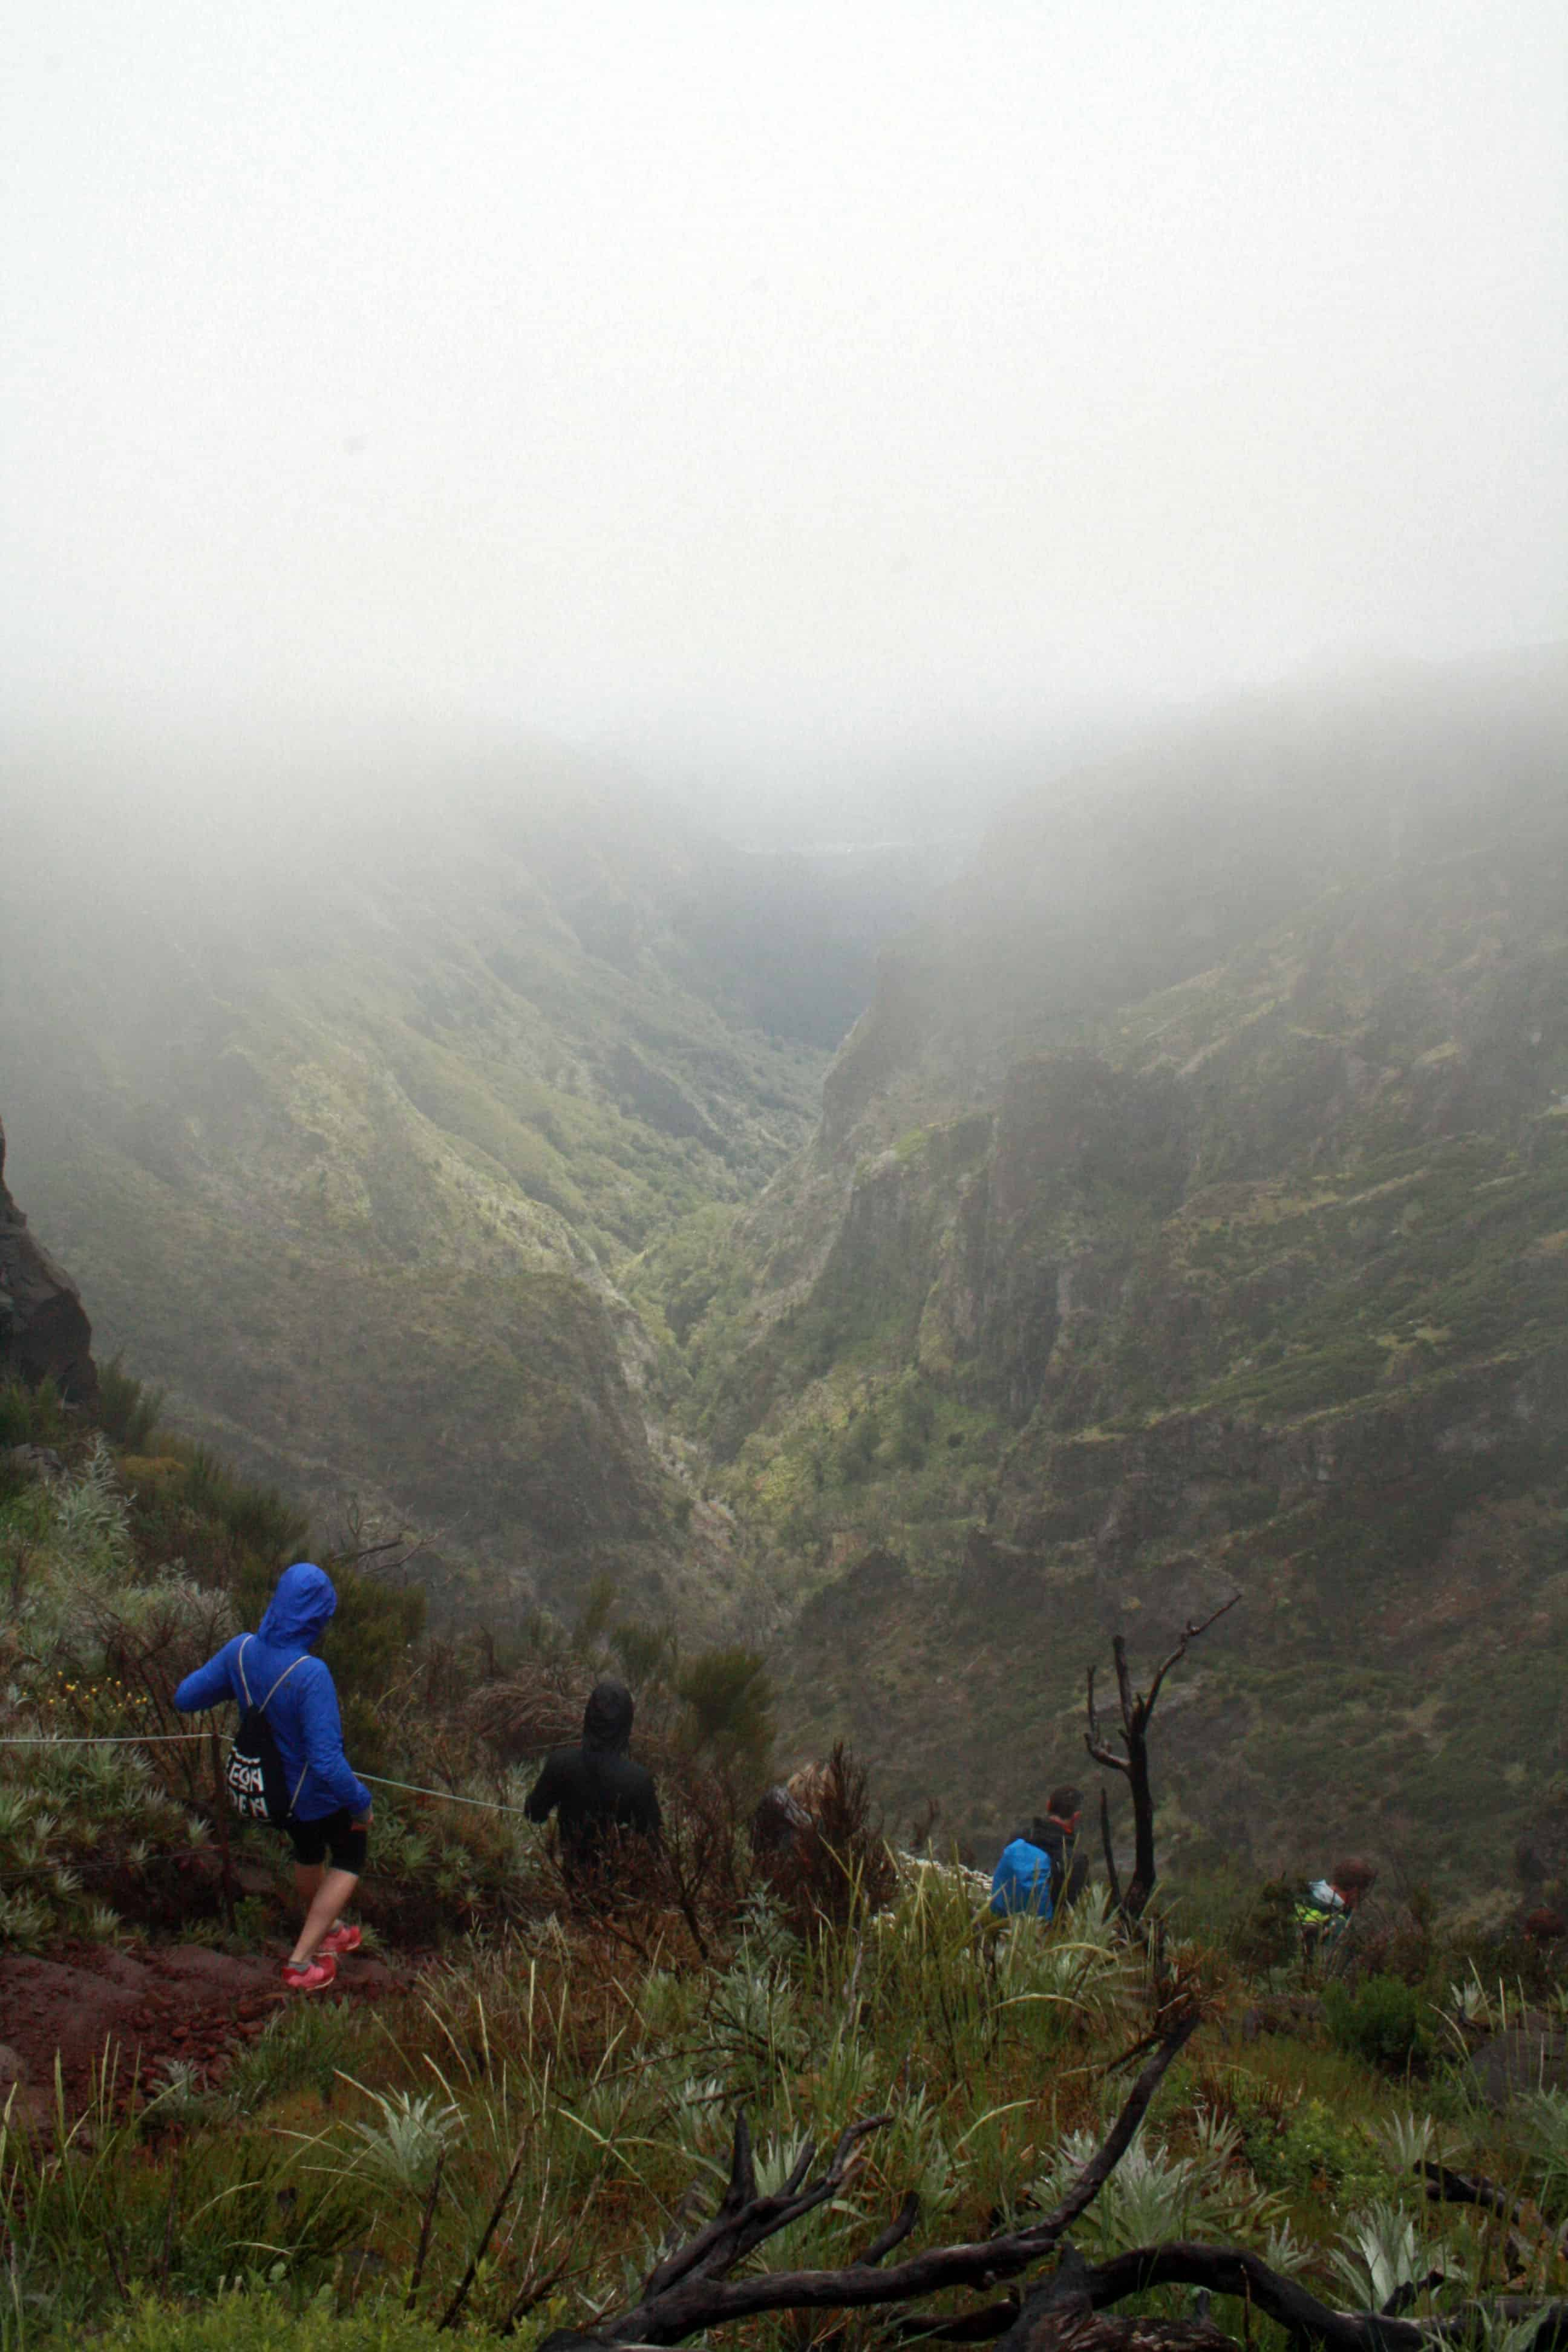 Hiking to Pico Ruivo from Pico do Arieiro